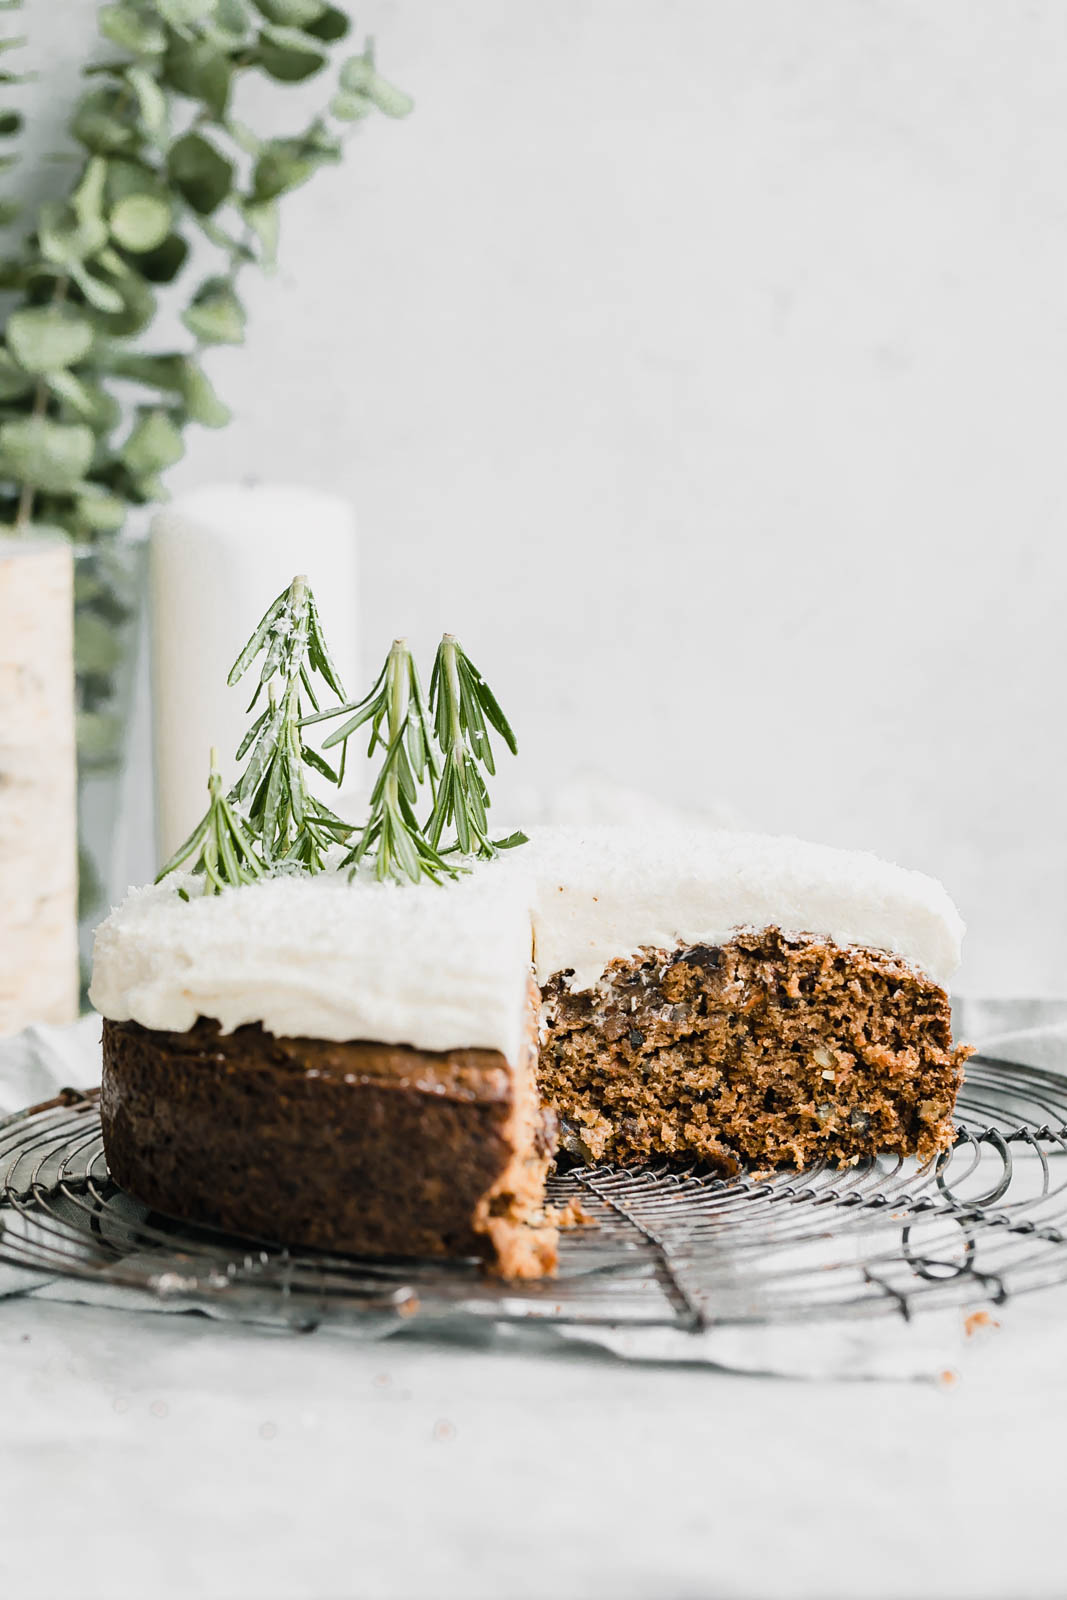 coconut carrot cake with cream cheese frosting on wire rack